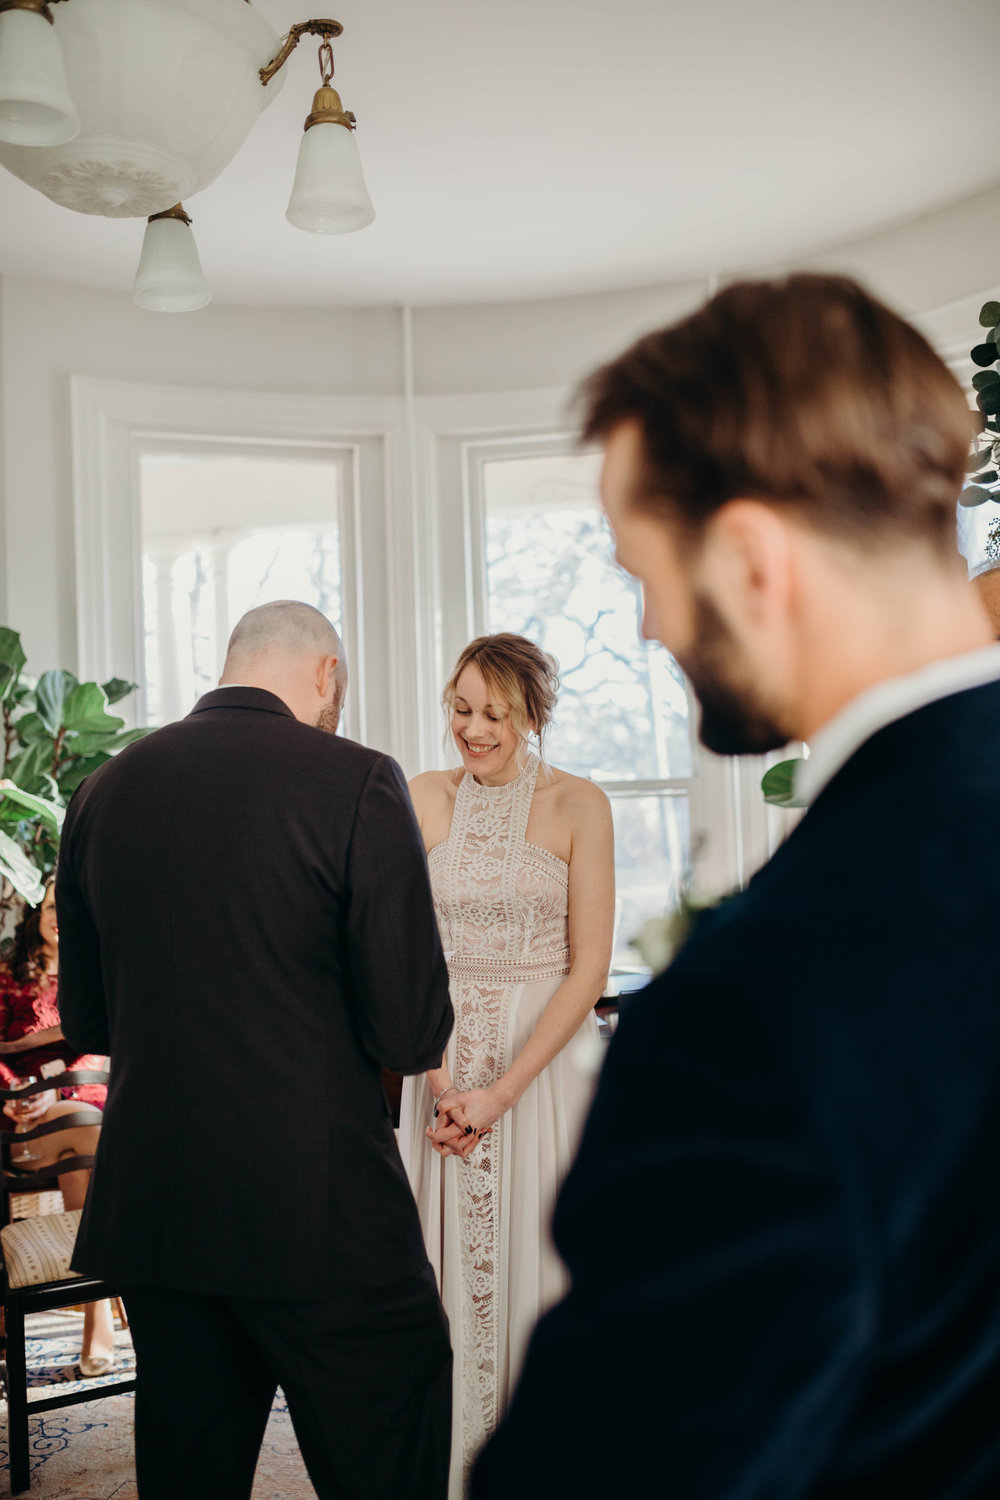 There was not at dry eye at this ceremony, it was absolutely beautiful!